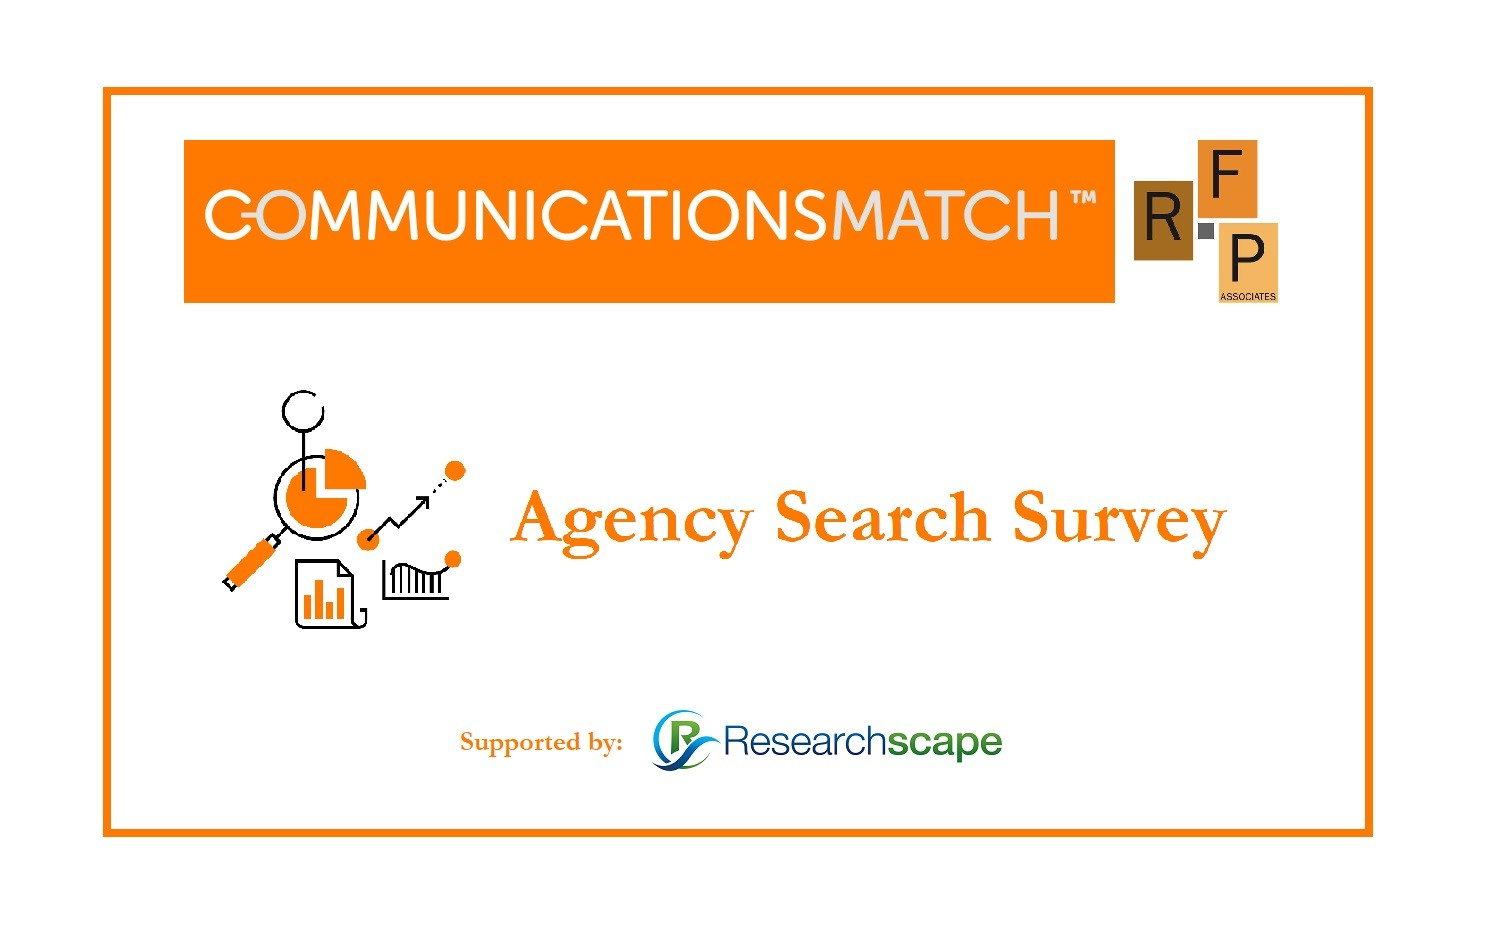 Agency Search Survey